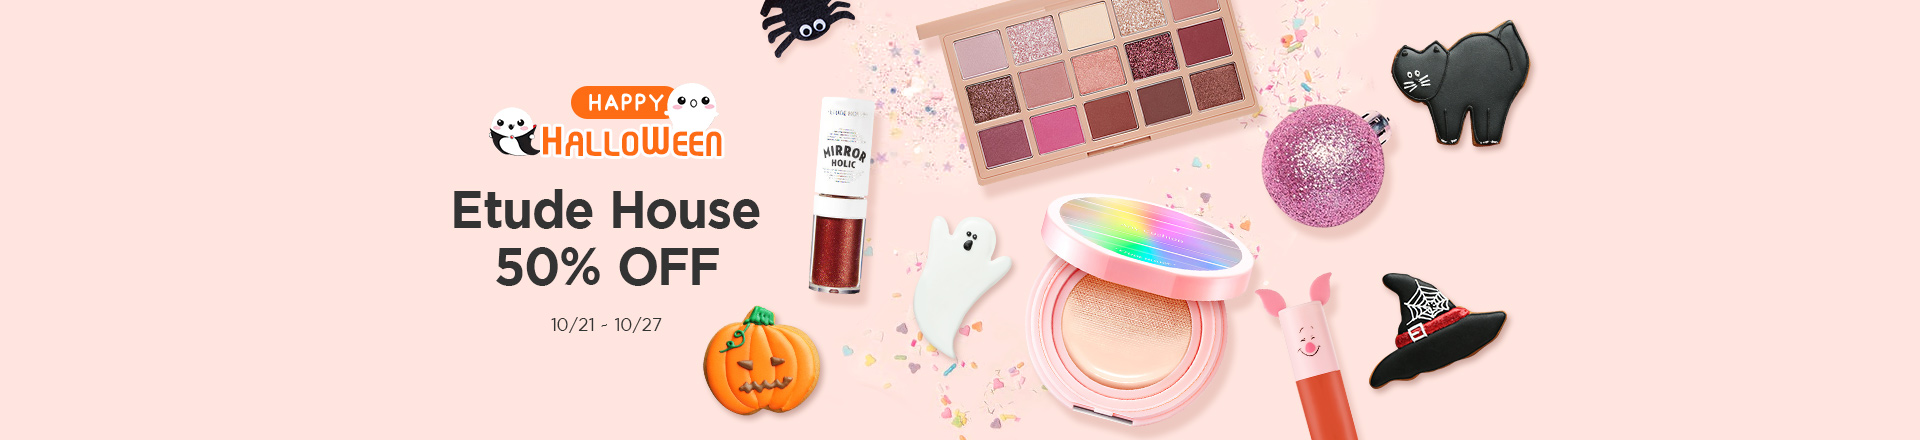 Etude House Brand Sale